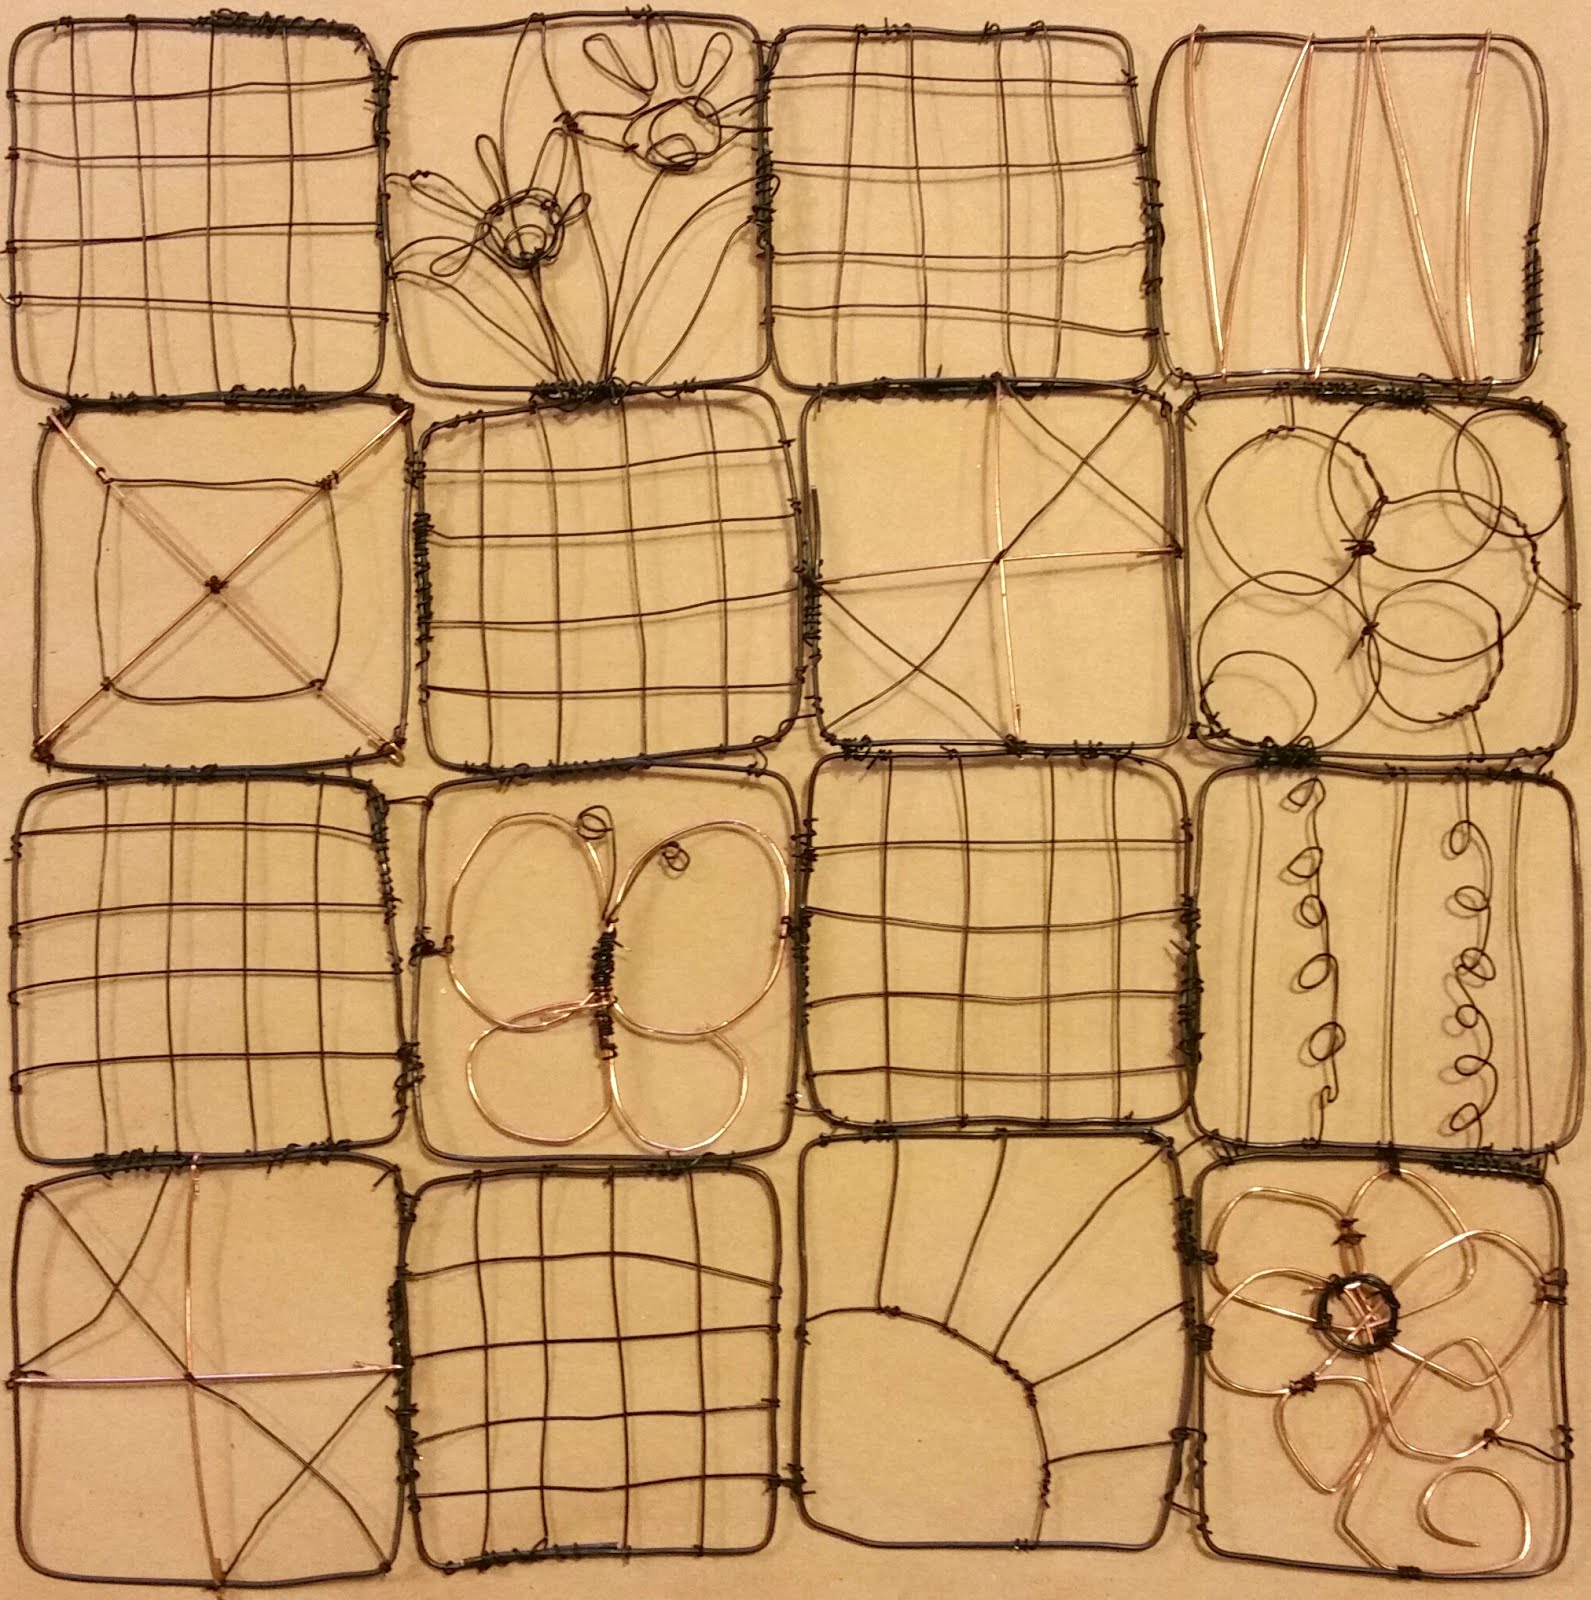 WIRE QUILT WALL HANGING WORKSHOP